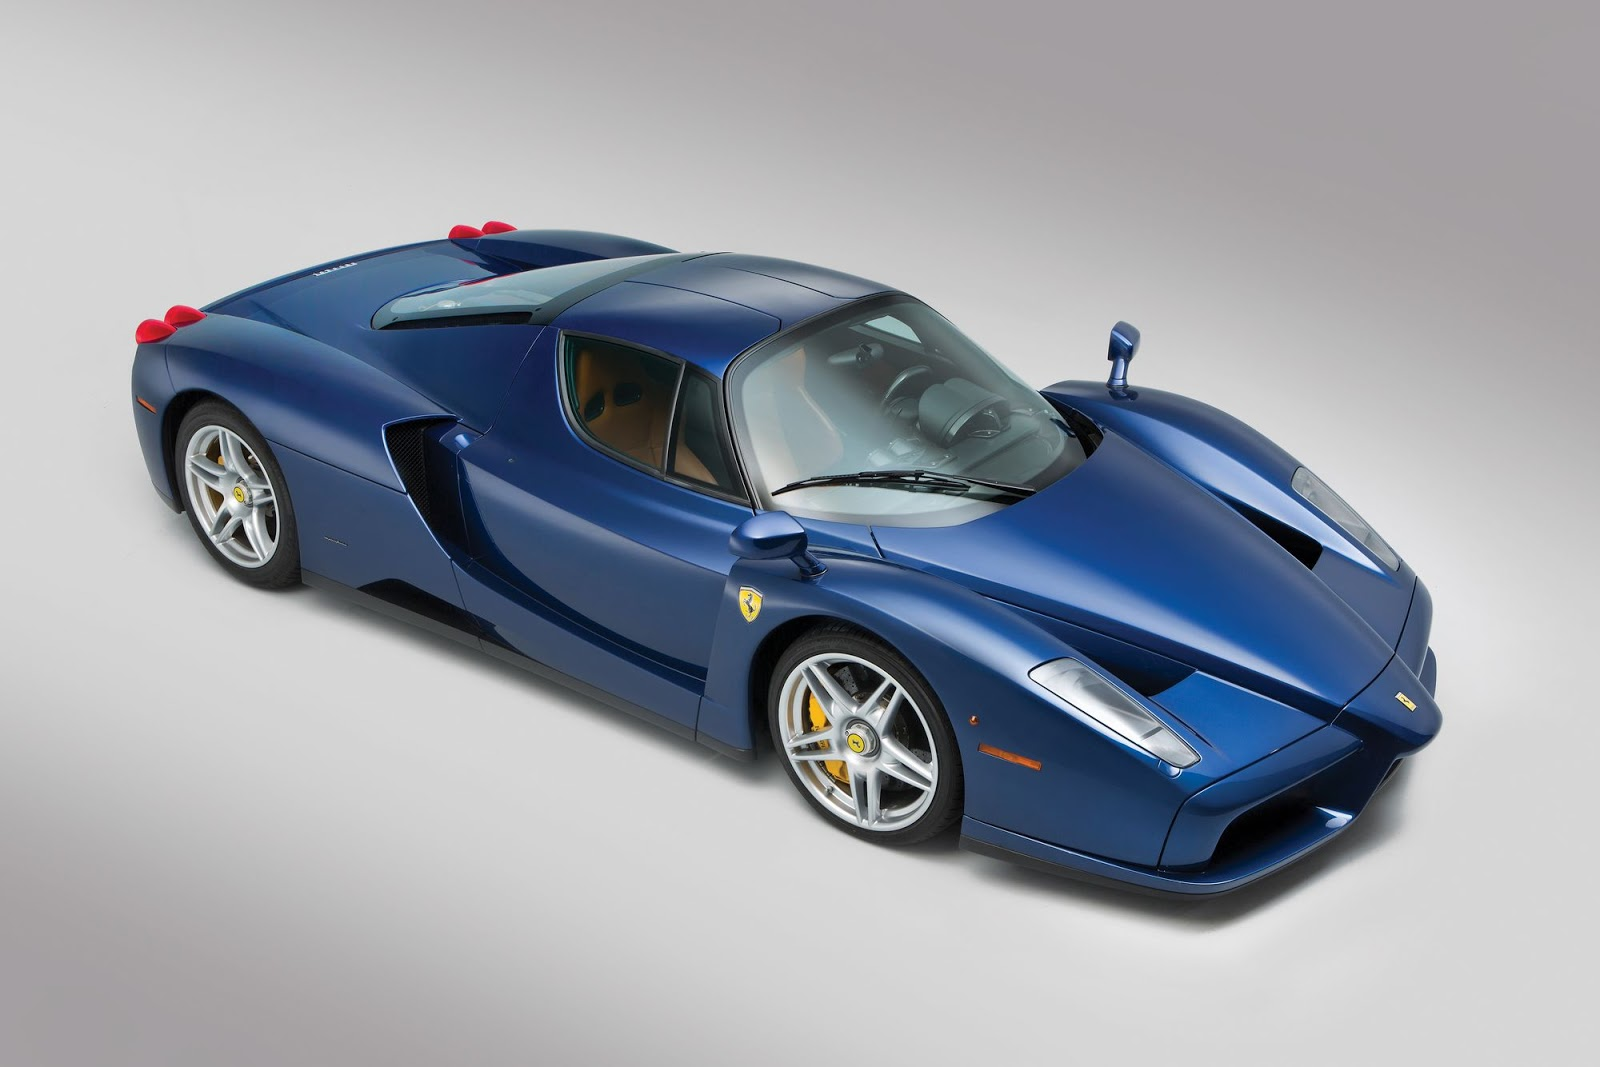 Blue Ferrari Enzo in auction (6)